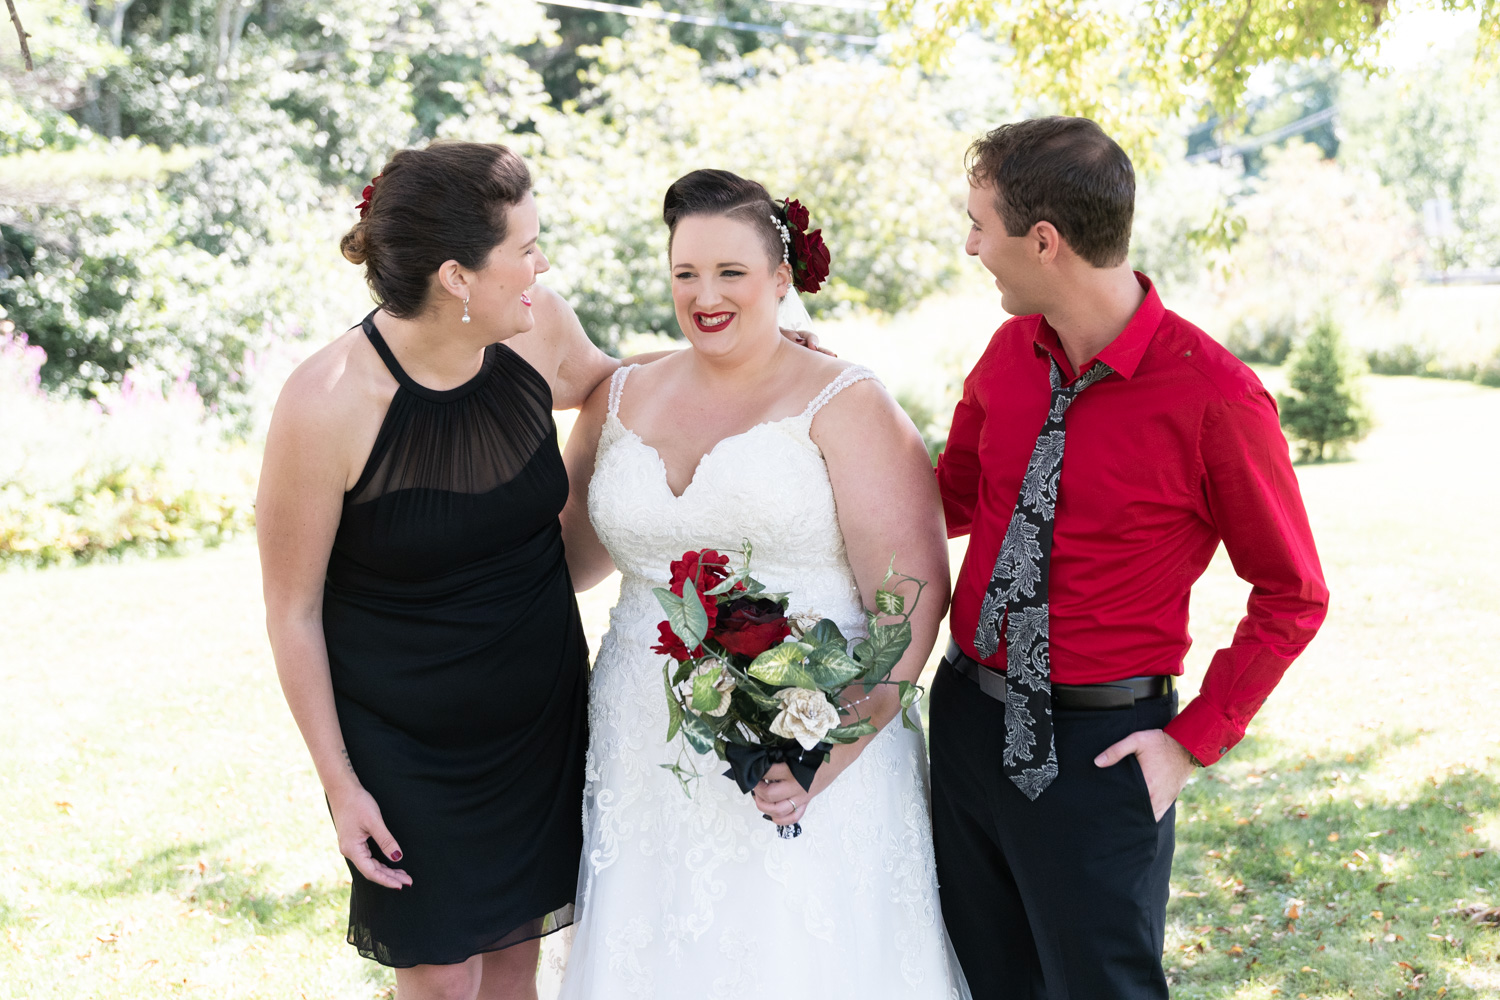 averylovelywedding-9964.jpg